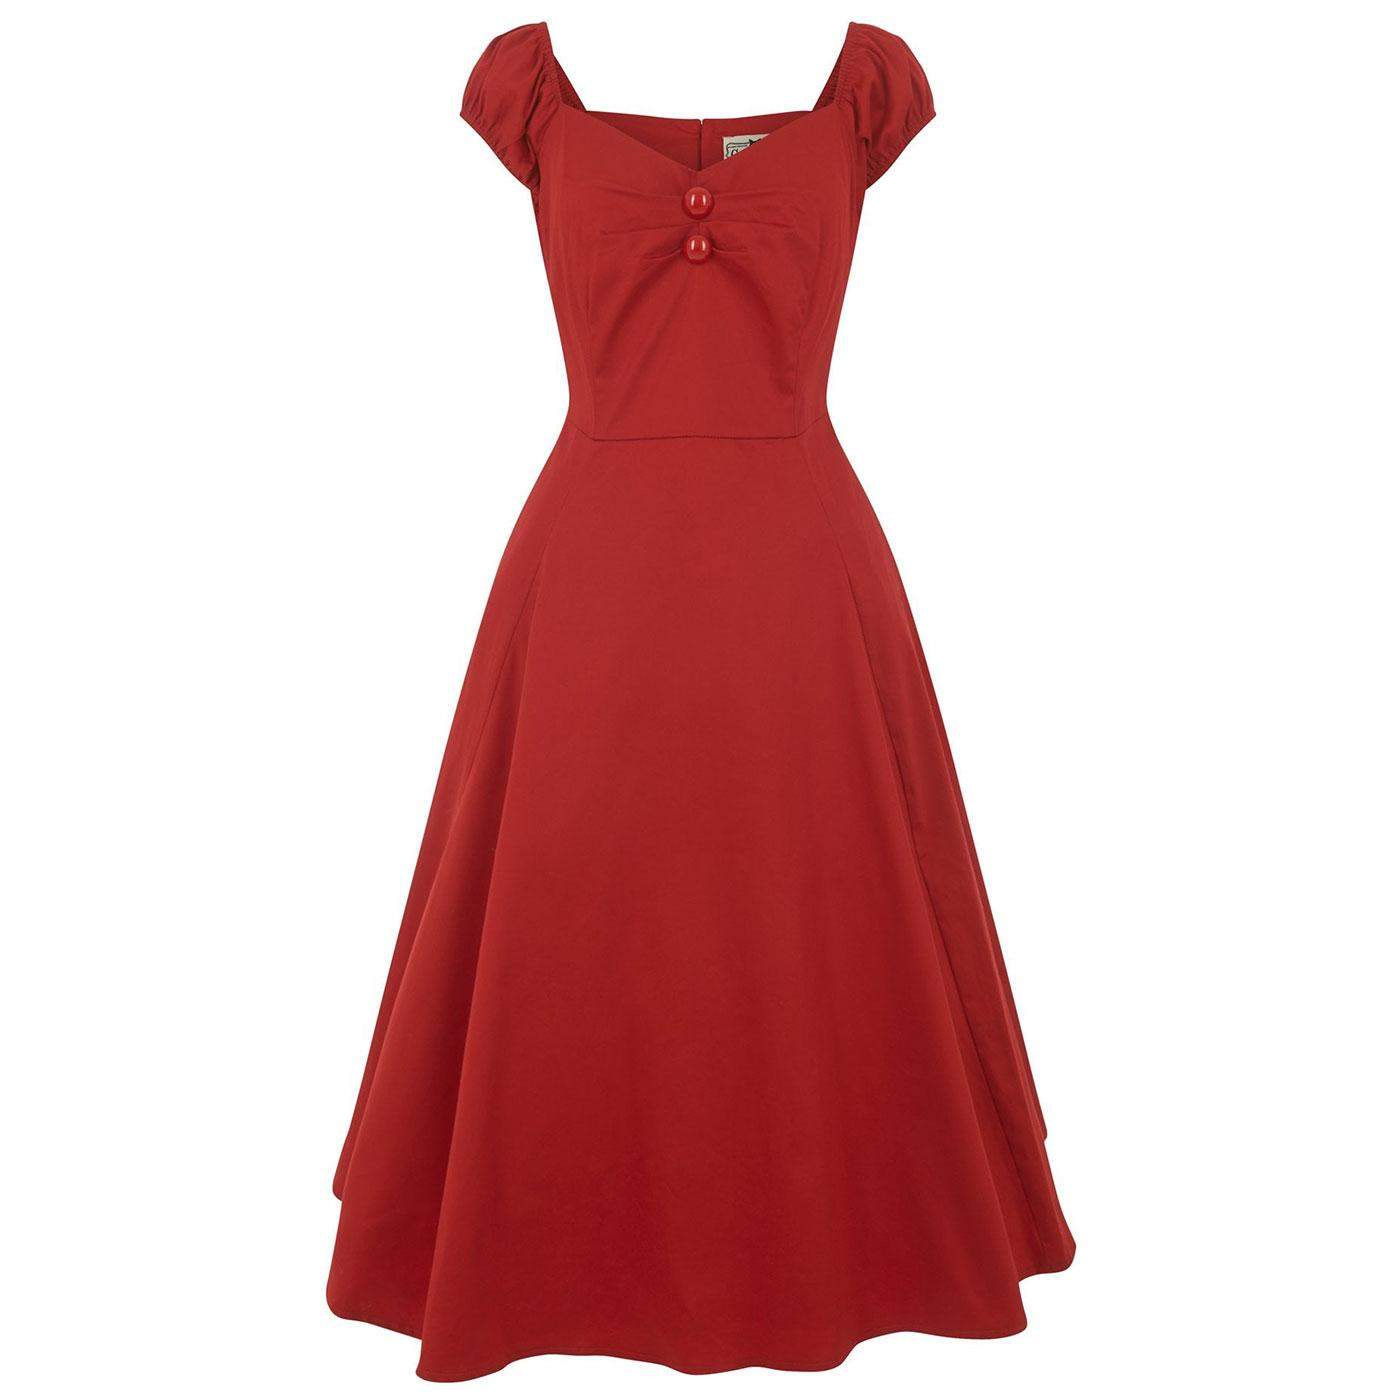 Dolores COLLECTIF Vintage 1950s Doll Dress (Red)